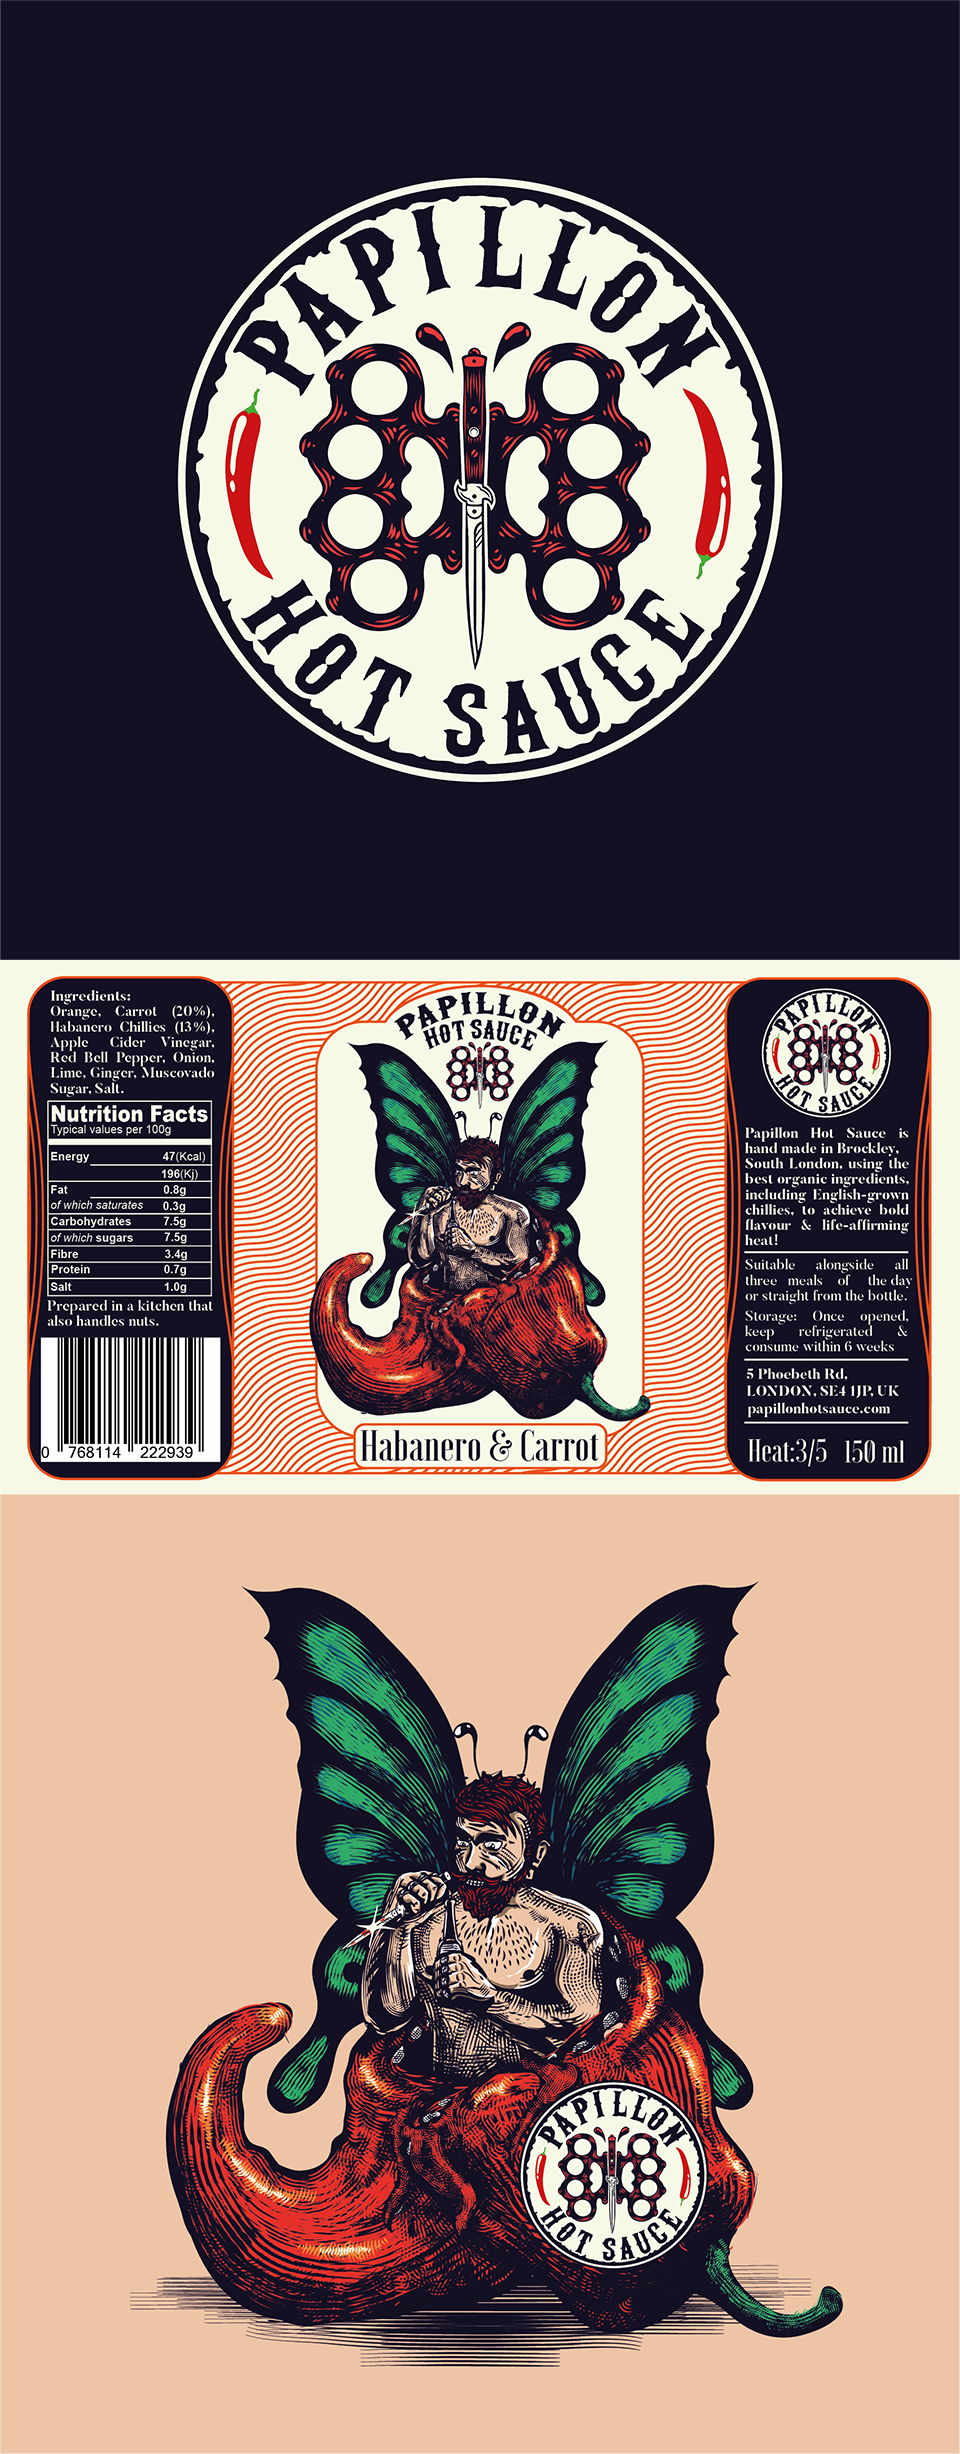 Papillon Killa Hot Sauce